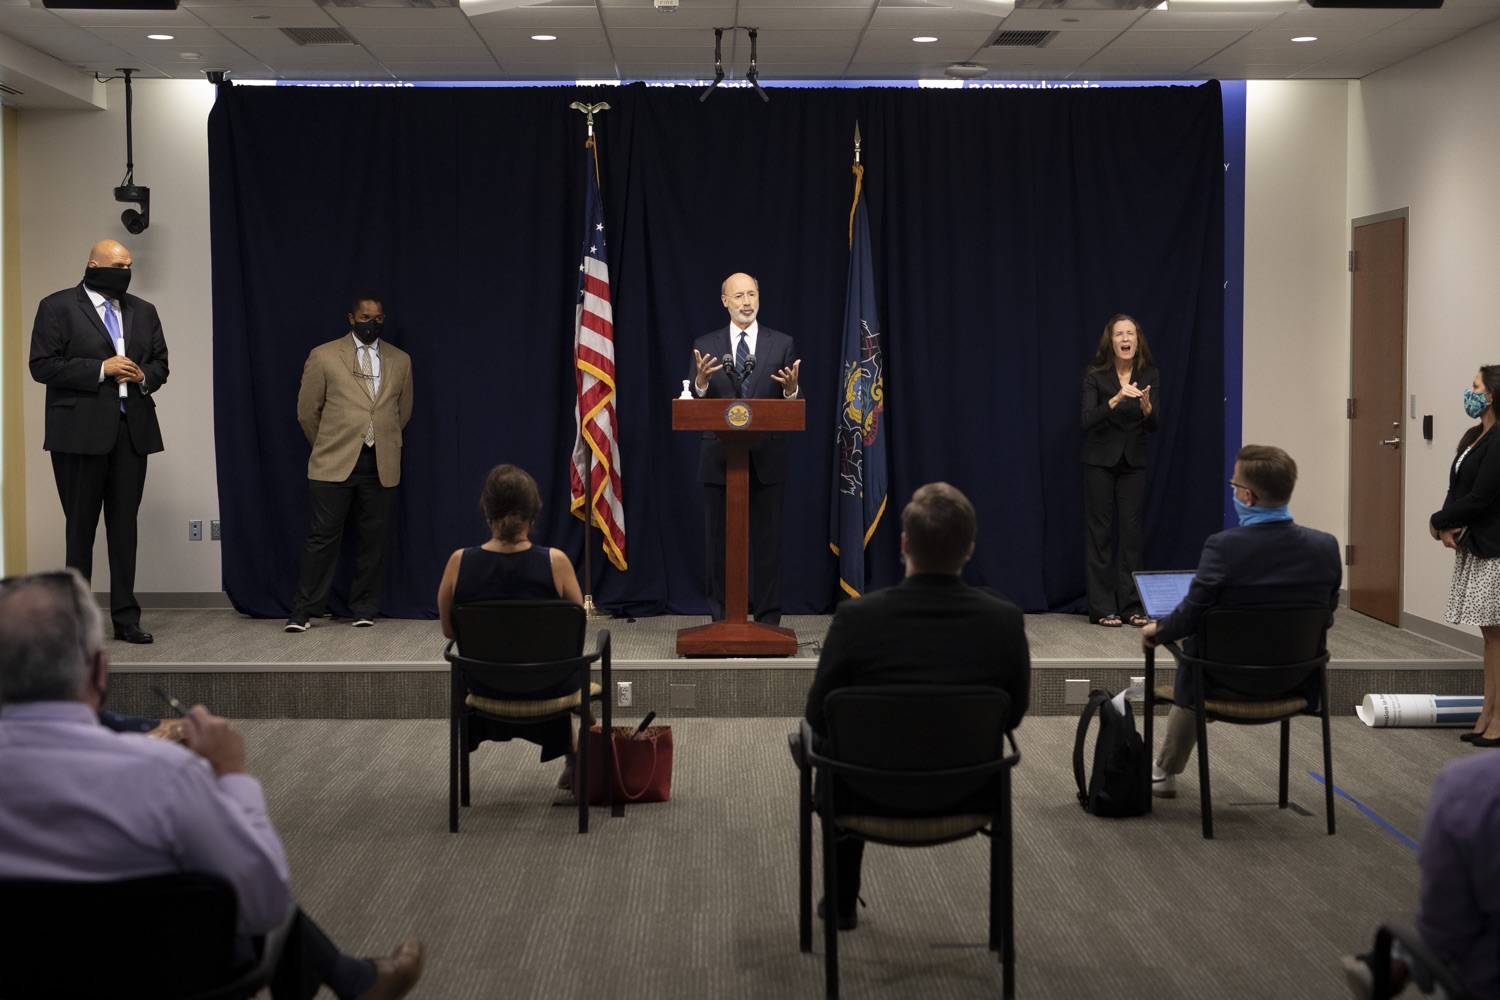 """<a href=""""https://filesource.wostreaming.net/commonwealthofpa/photo/18239_gov_recMarijuana_dz_010.jpg"""" target=""""_blank"""">⇣Download Photo<br></a>Pennsylvania Governor Tom Wolf speaking with the press. Governor Tom Wolf and Lt. Governor John Fetterman today called on the legislature to take up the legalization of adult-use cannabis to help with the states economic recovery amid COVID-19. Legalization will also create more outlets for important restorative justice programs in the commonwealth.  Harrisburg, PA  Sept. 3, 2020"""